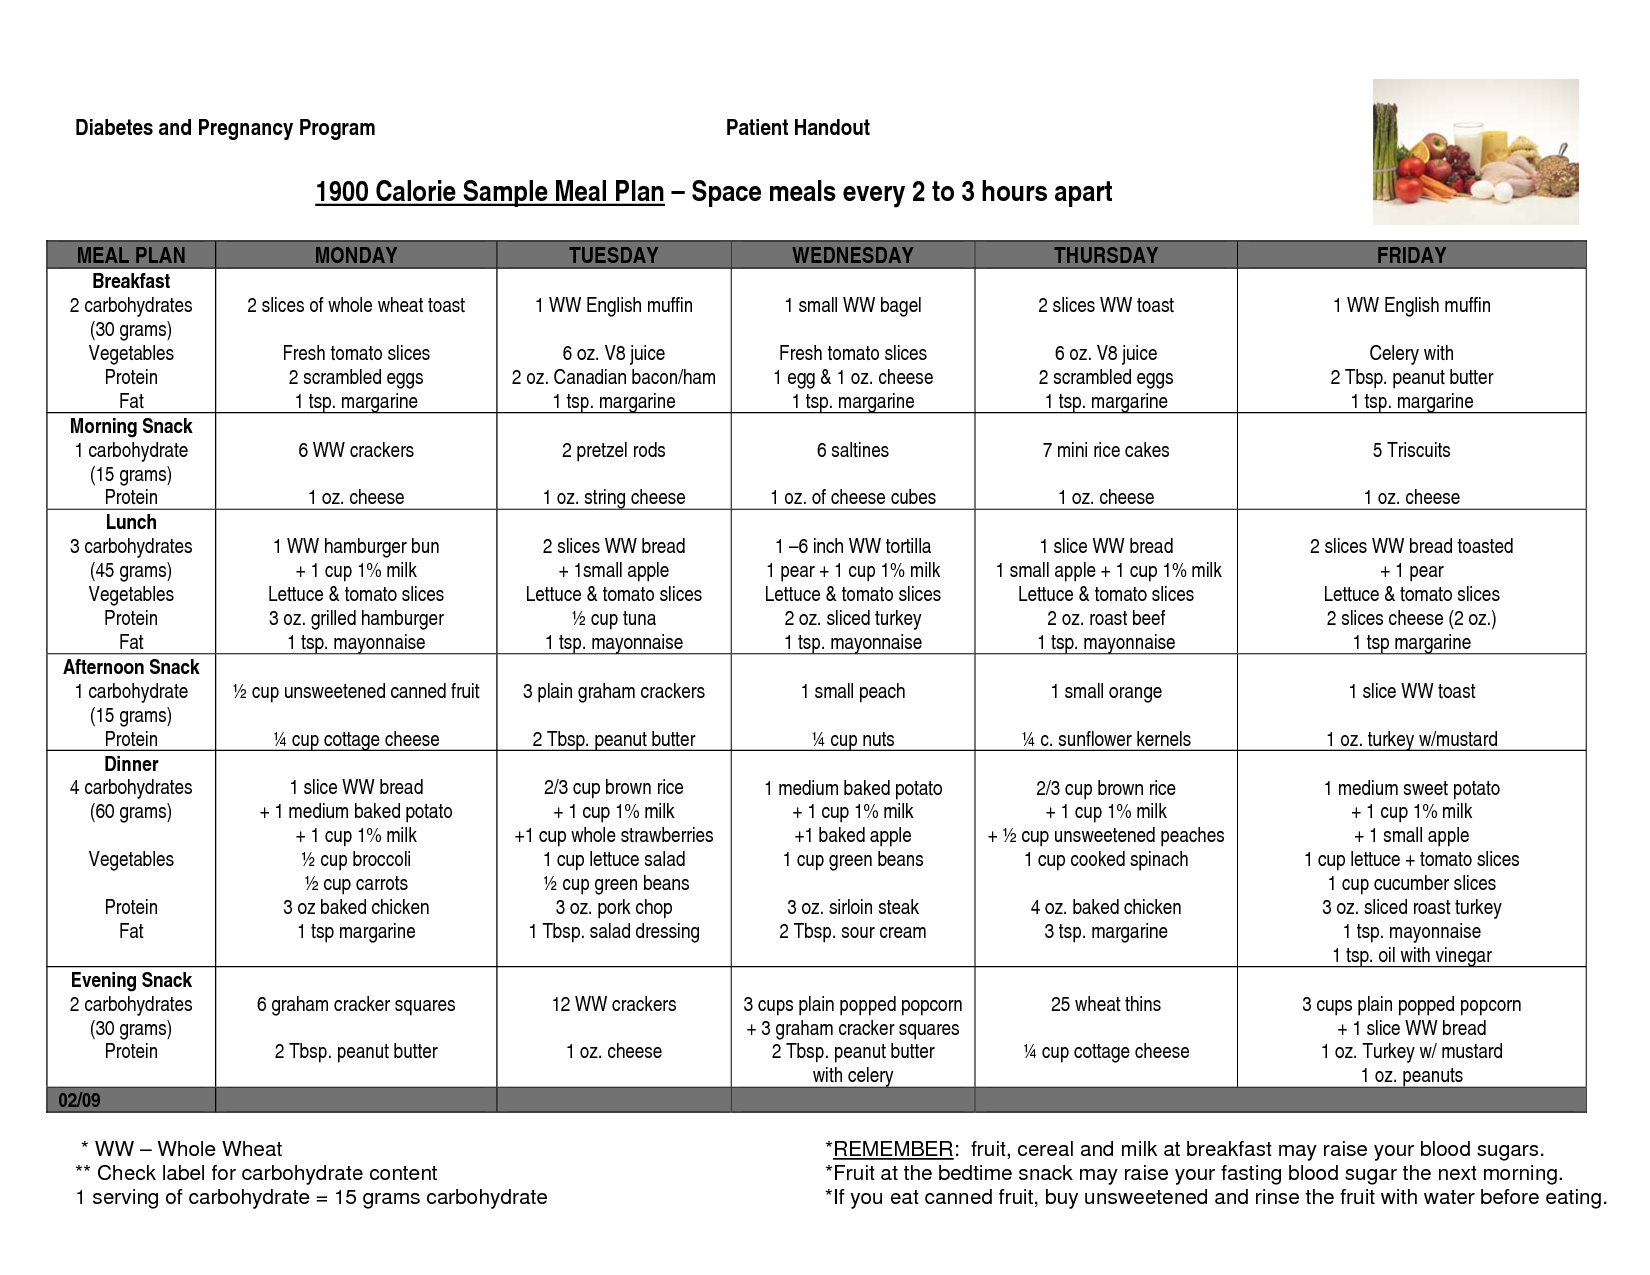 Diabetic Dinner Menu Samples   Calorie Sample Meal Plan